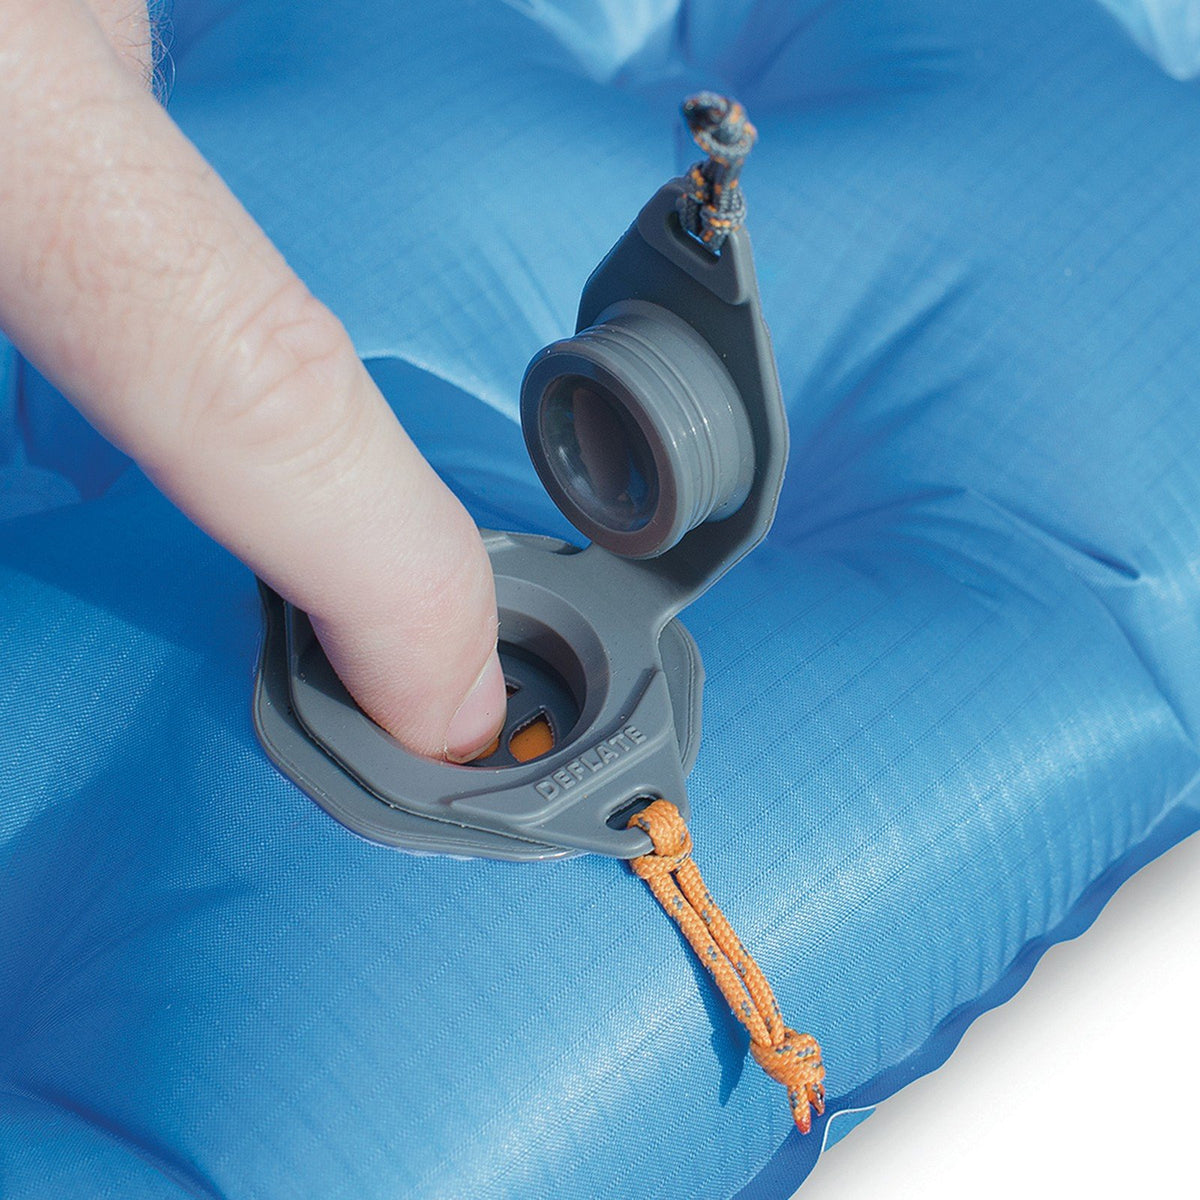 Sea to Summit UltraLight Insulated Mat, showing air valve detail